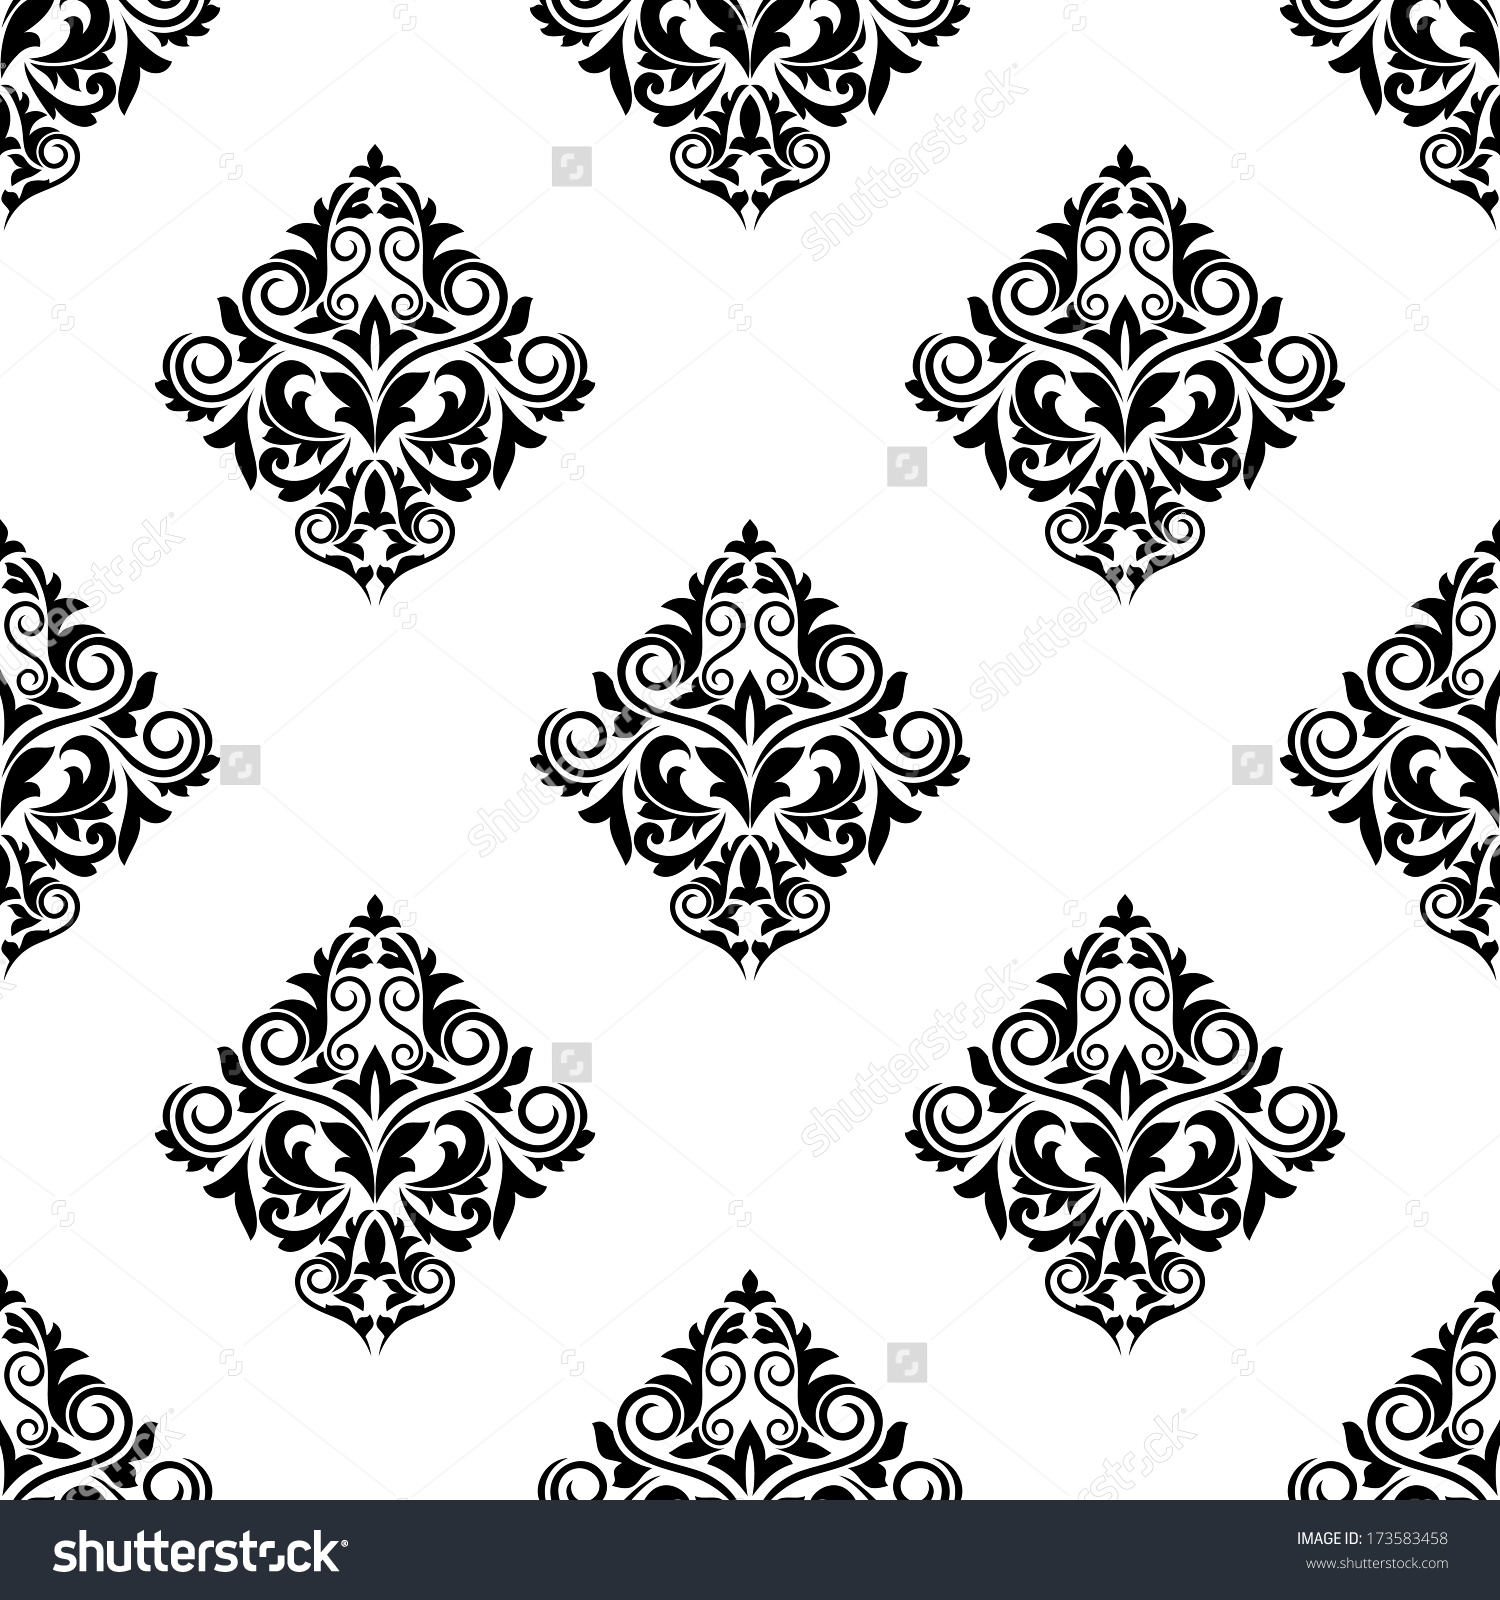 Damaskstyle Seamless Arabesque Pattern Floral Motifs Stock Vector.